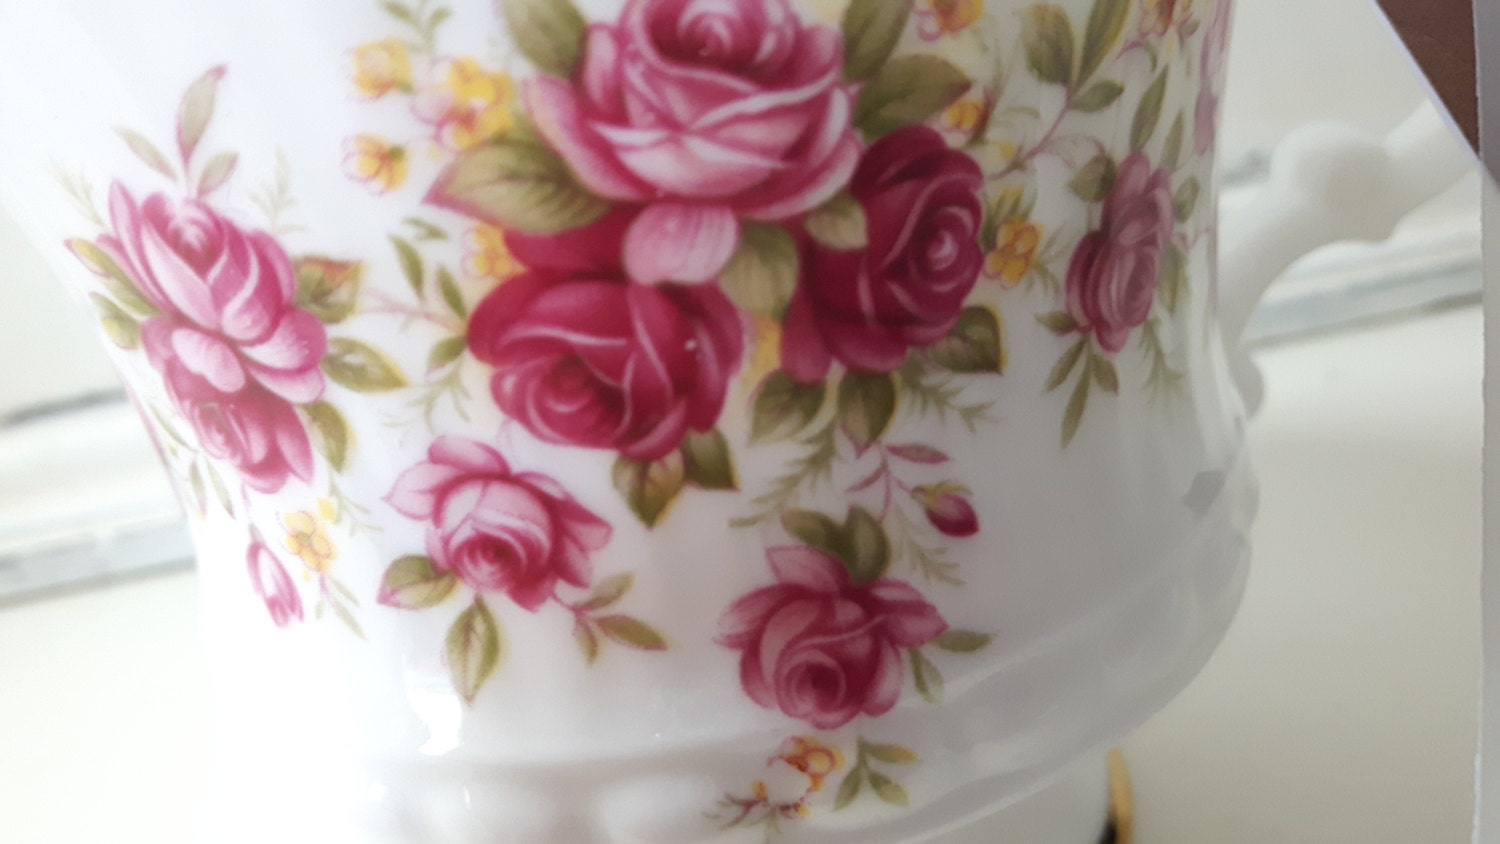 Hand poured scented soy wax vegan vintage milk jug candle, scented with rhubarb and blackberry. Mother's Day candle